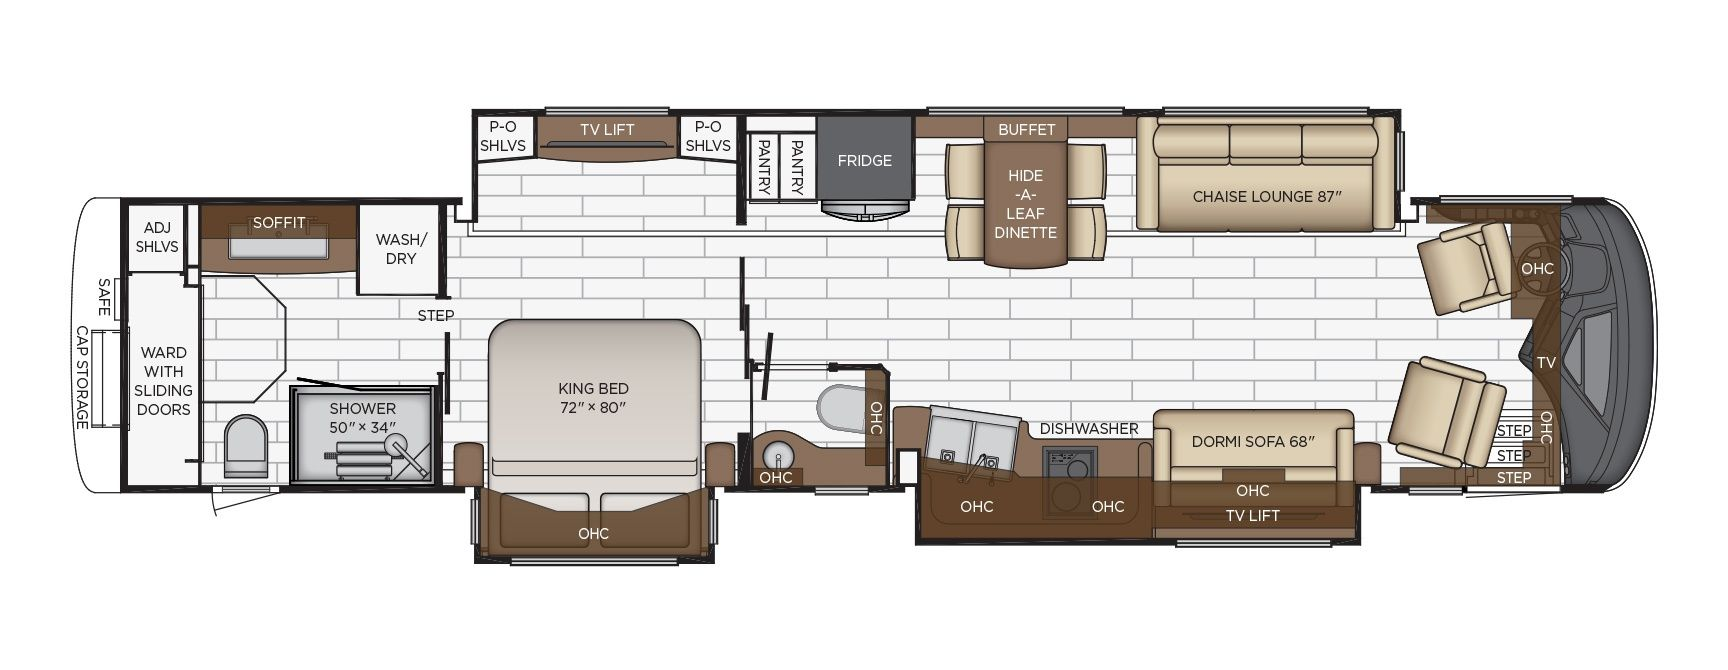 King Aire floor plan options Newmar in 2020 Luxury rv